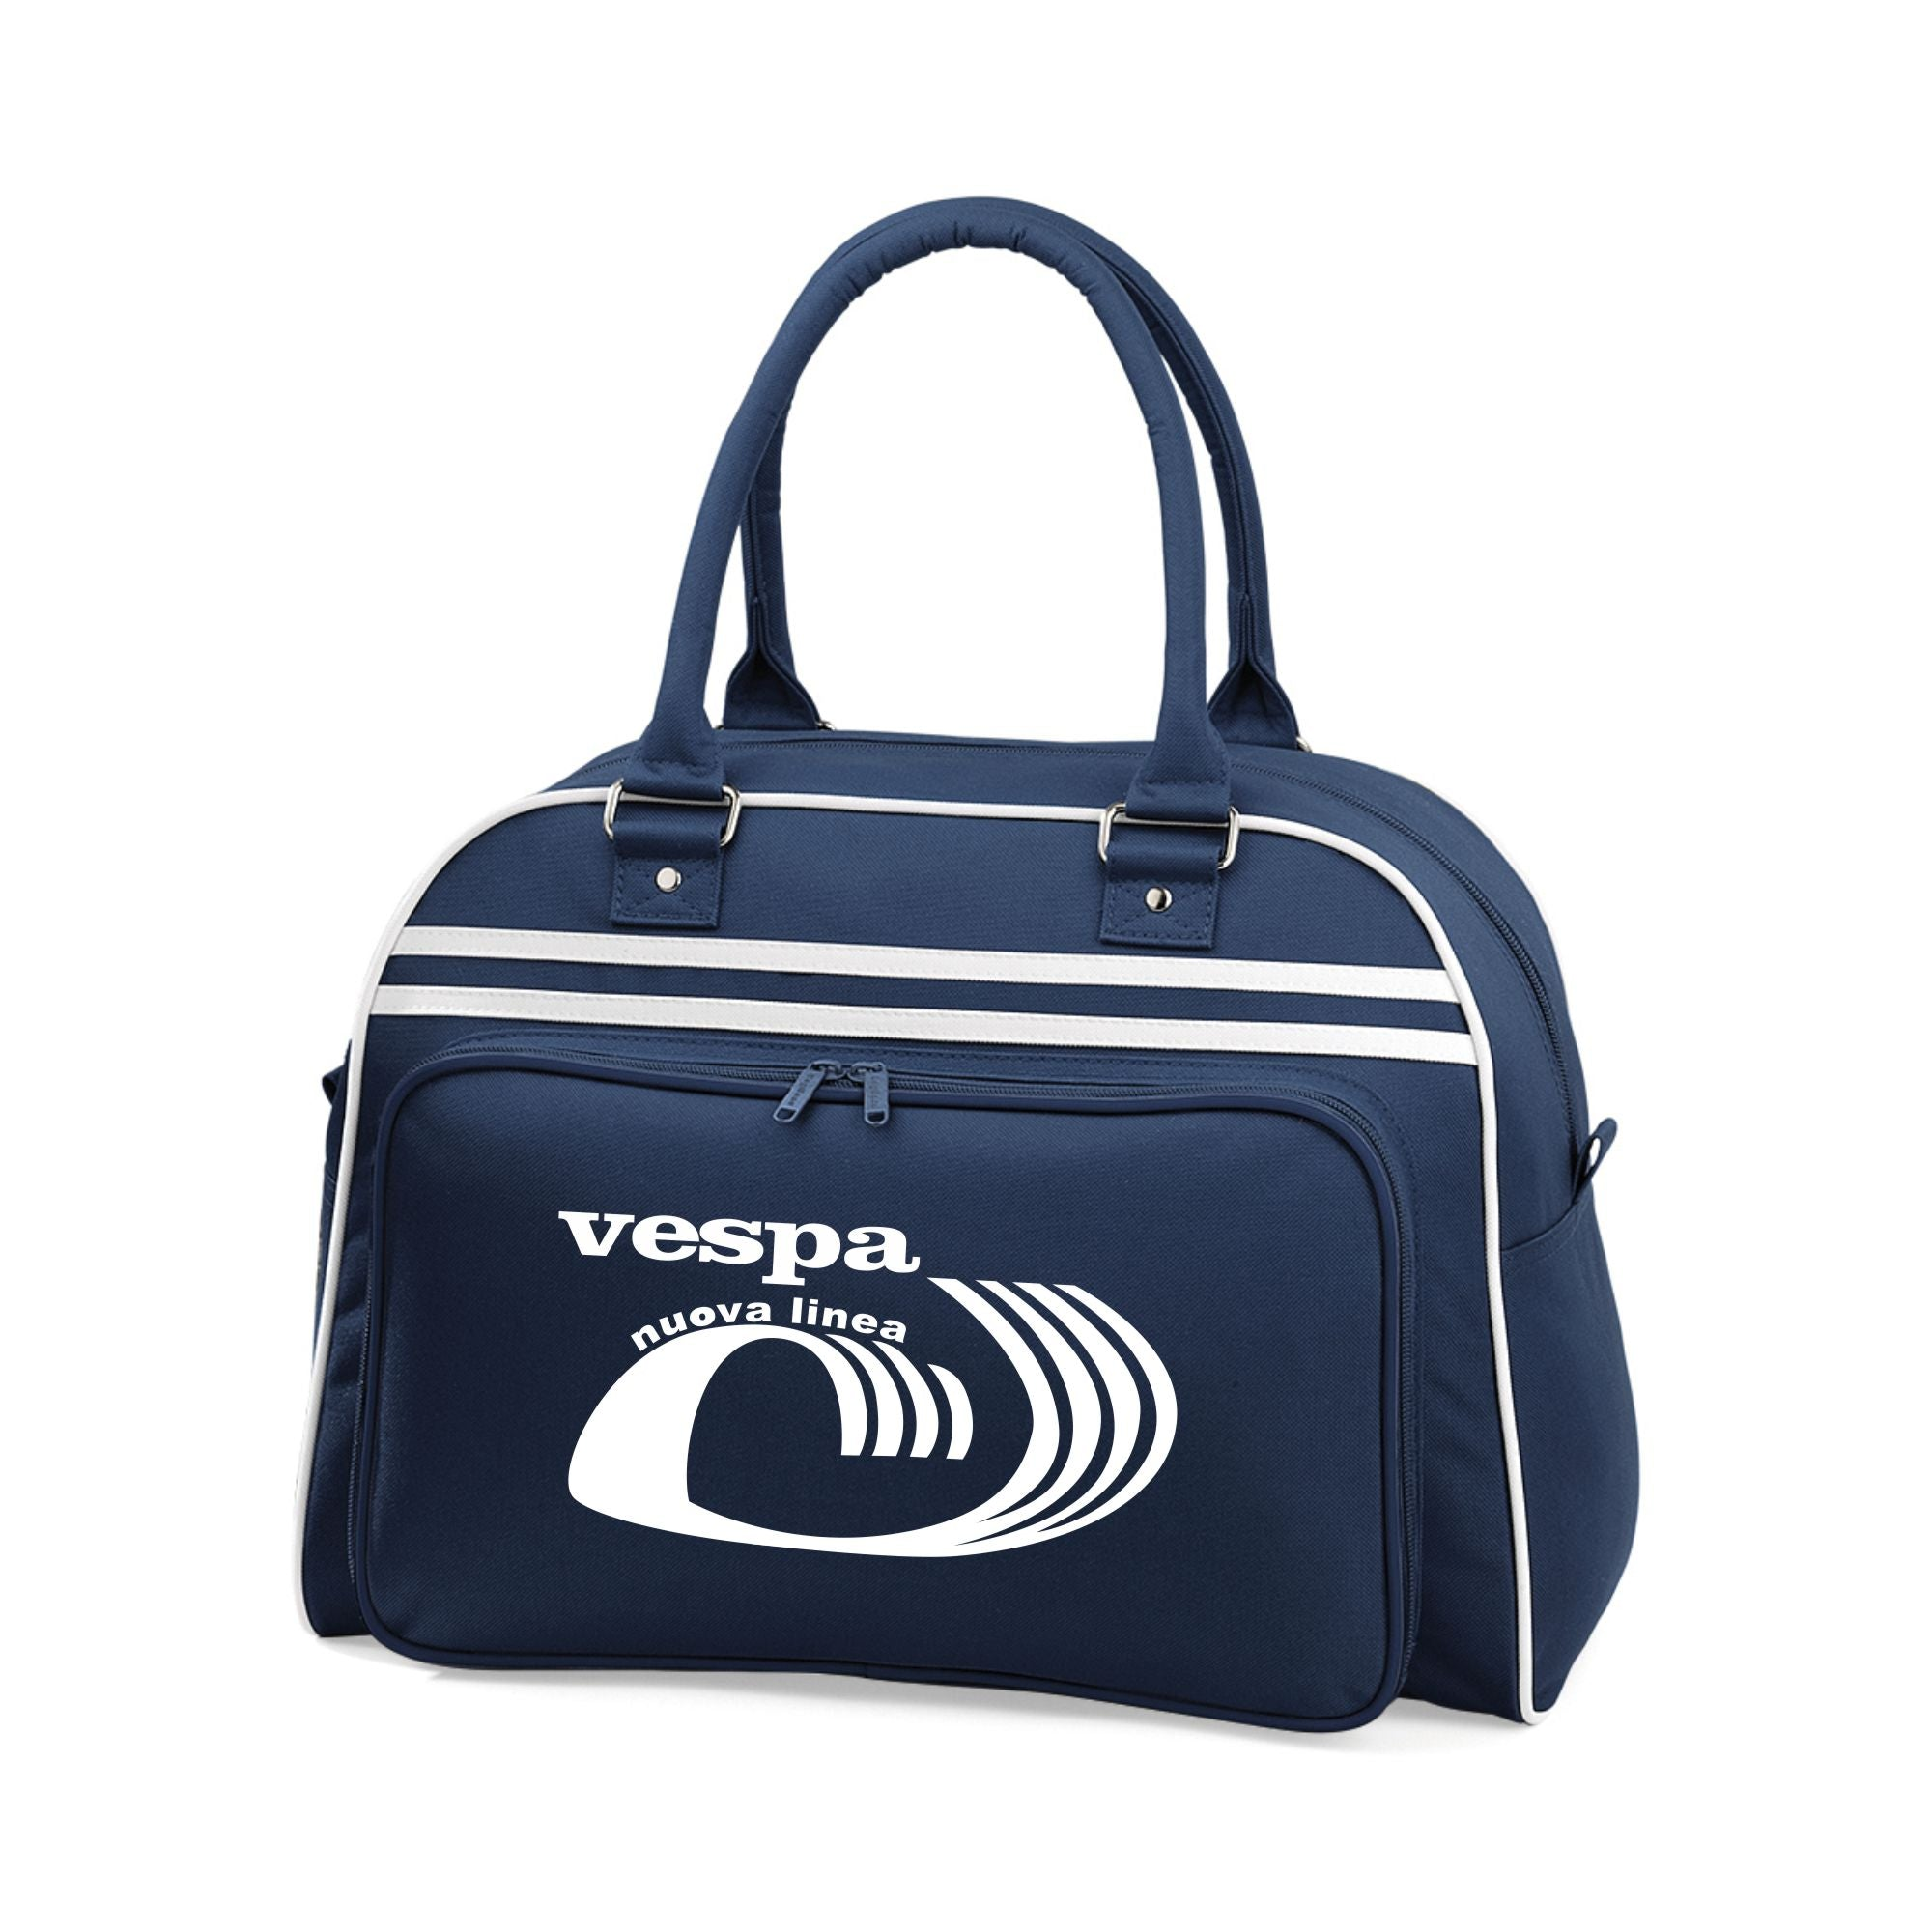 Vespa Nuevo Linea Bowling Bag - Comes In Navy/White, Red/White & Black/White - FREE UK POSTAGE !!